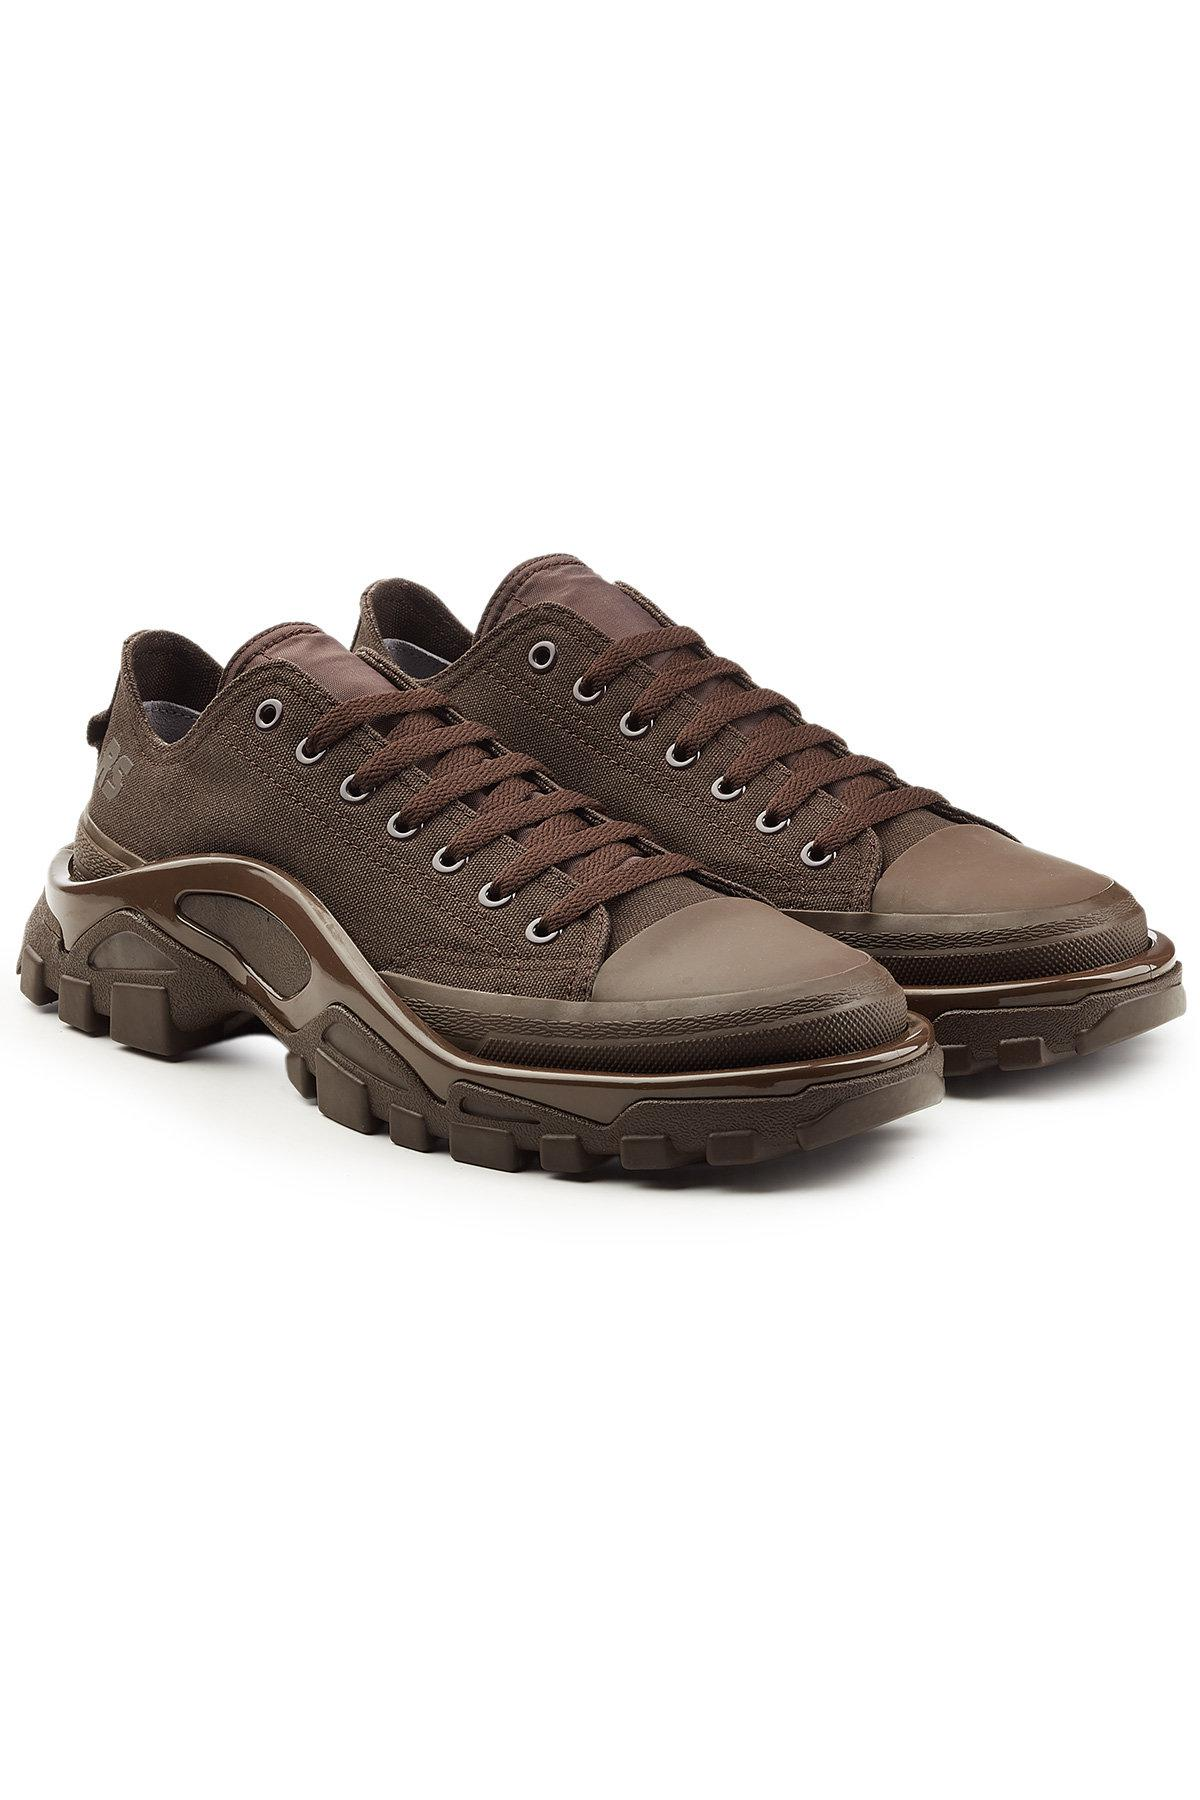 huge selection of 26d1a 155ba Lyst - adidas By Raf Simons Rs Detroit Runner Sneakers in Br